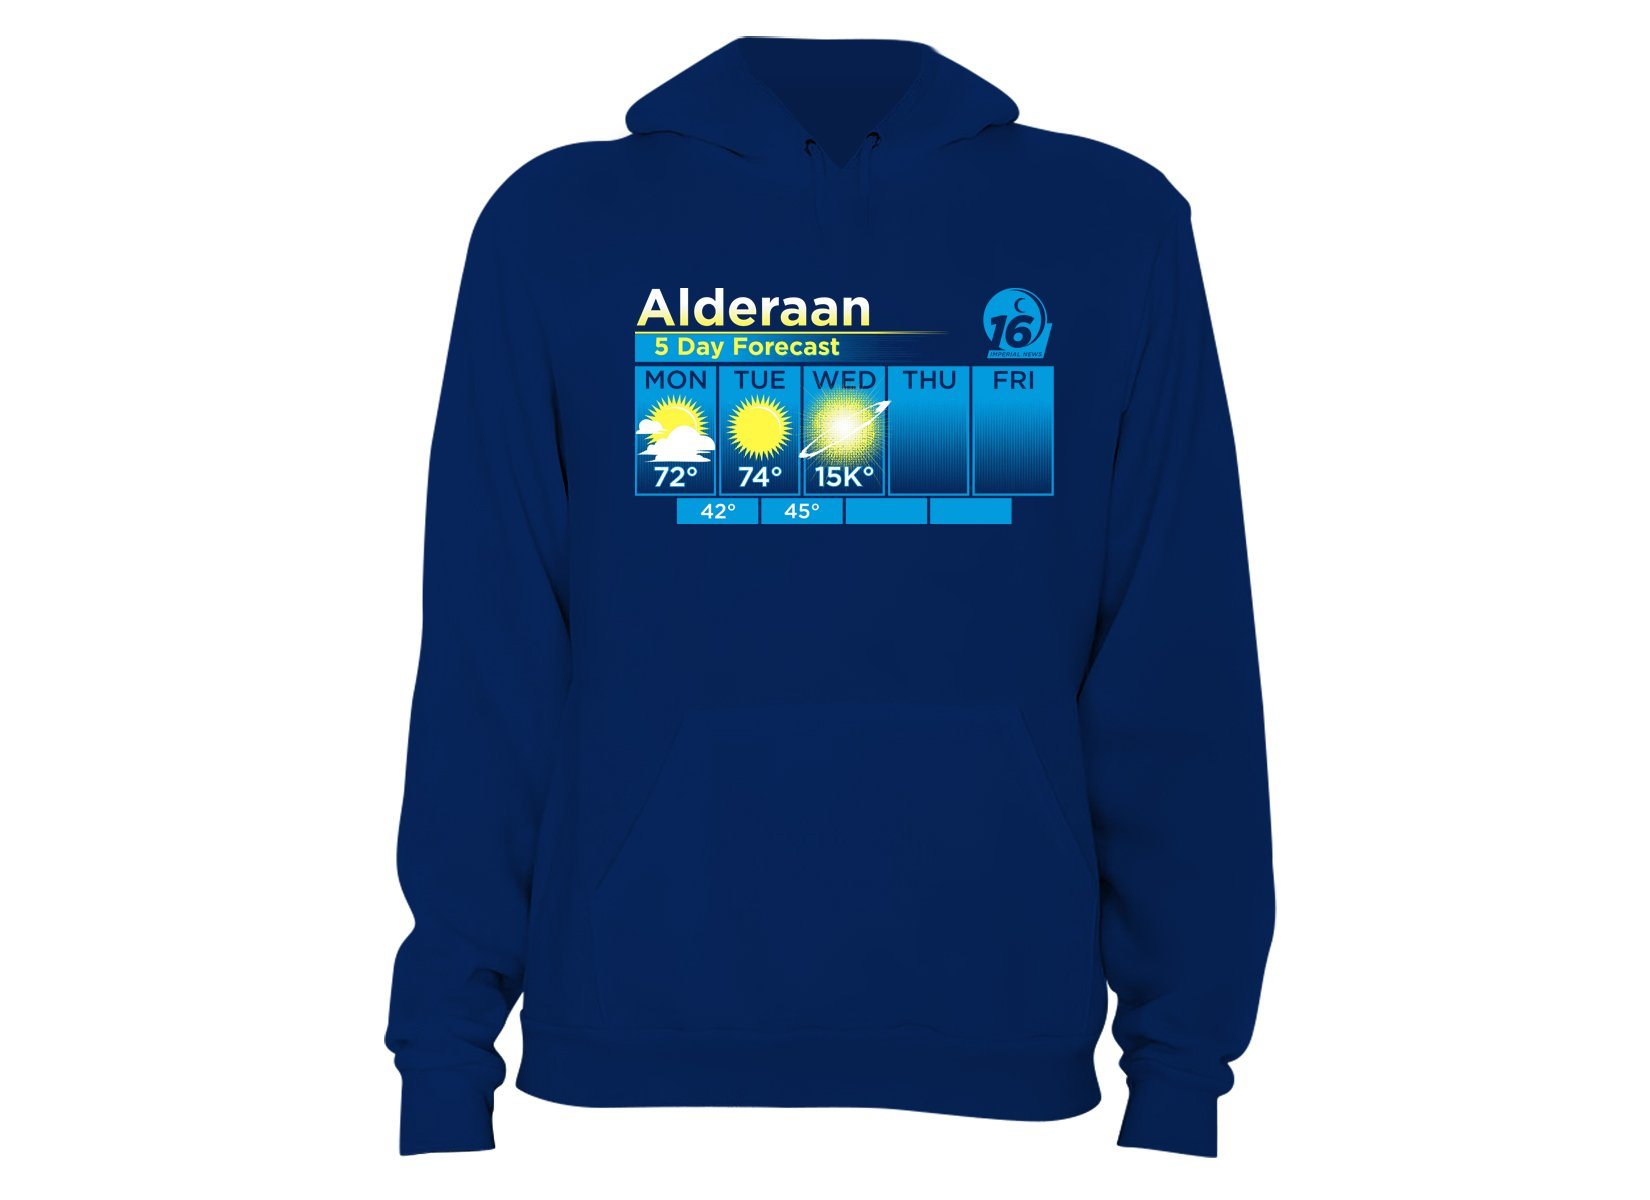 Alderaan 5 Day Forecast on Hoodie